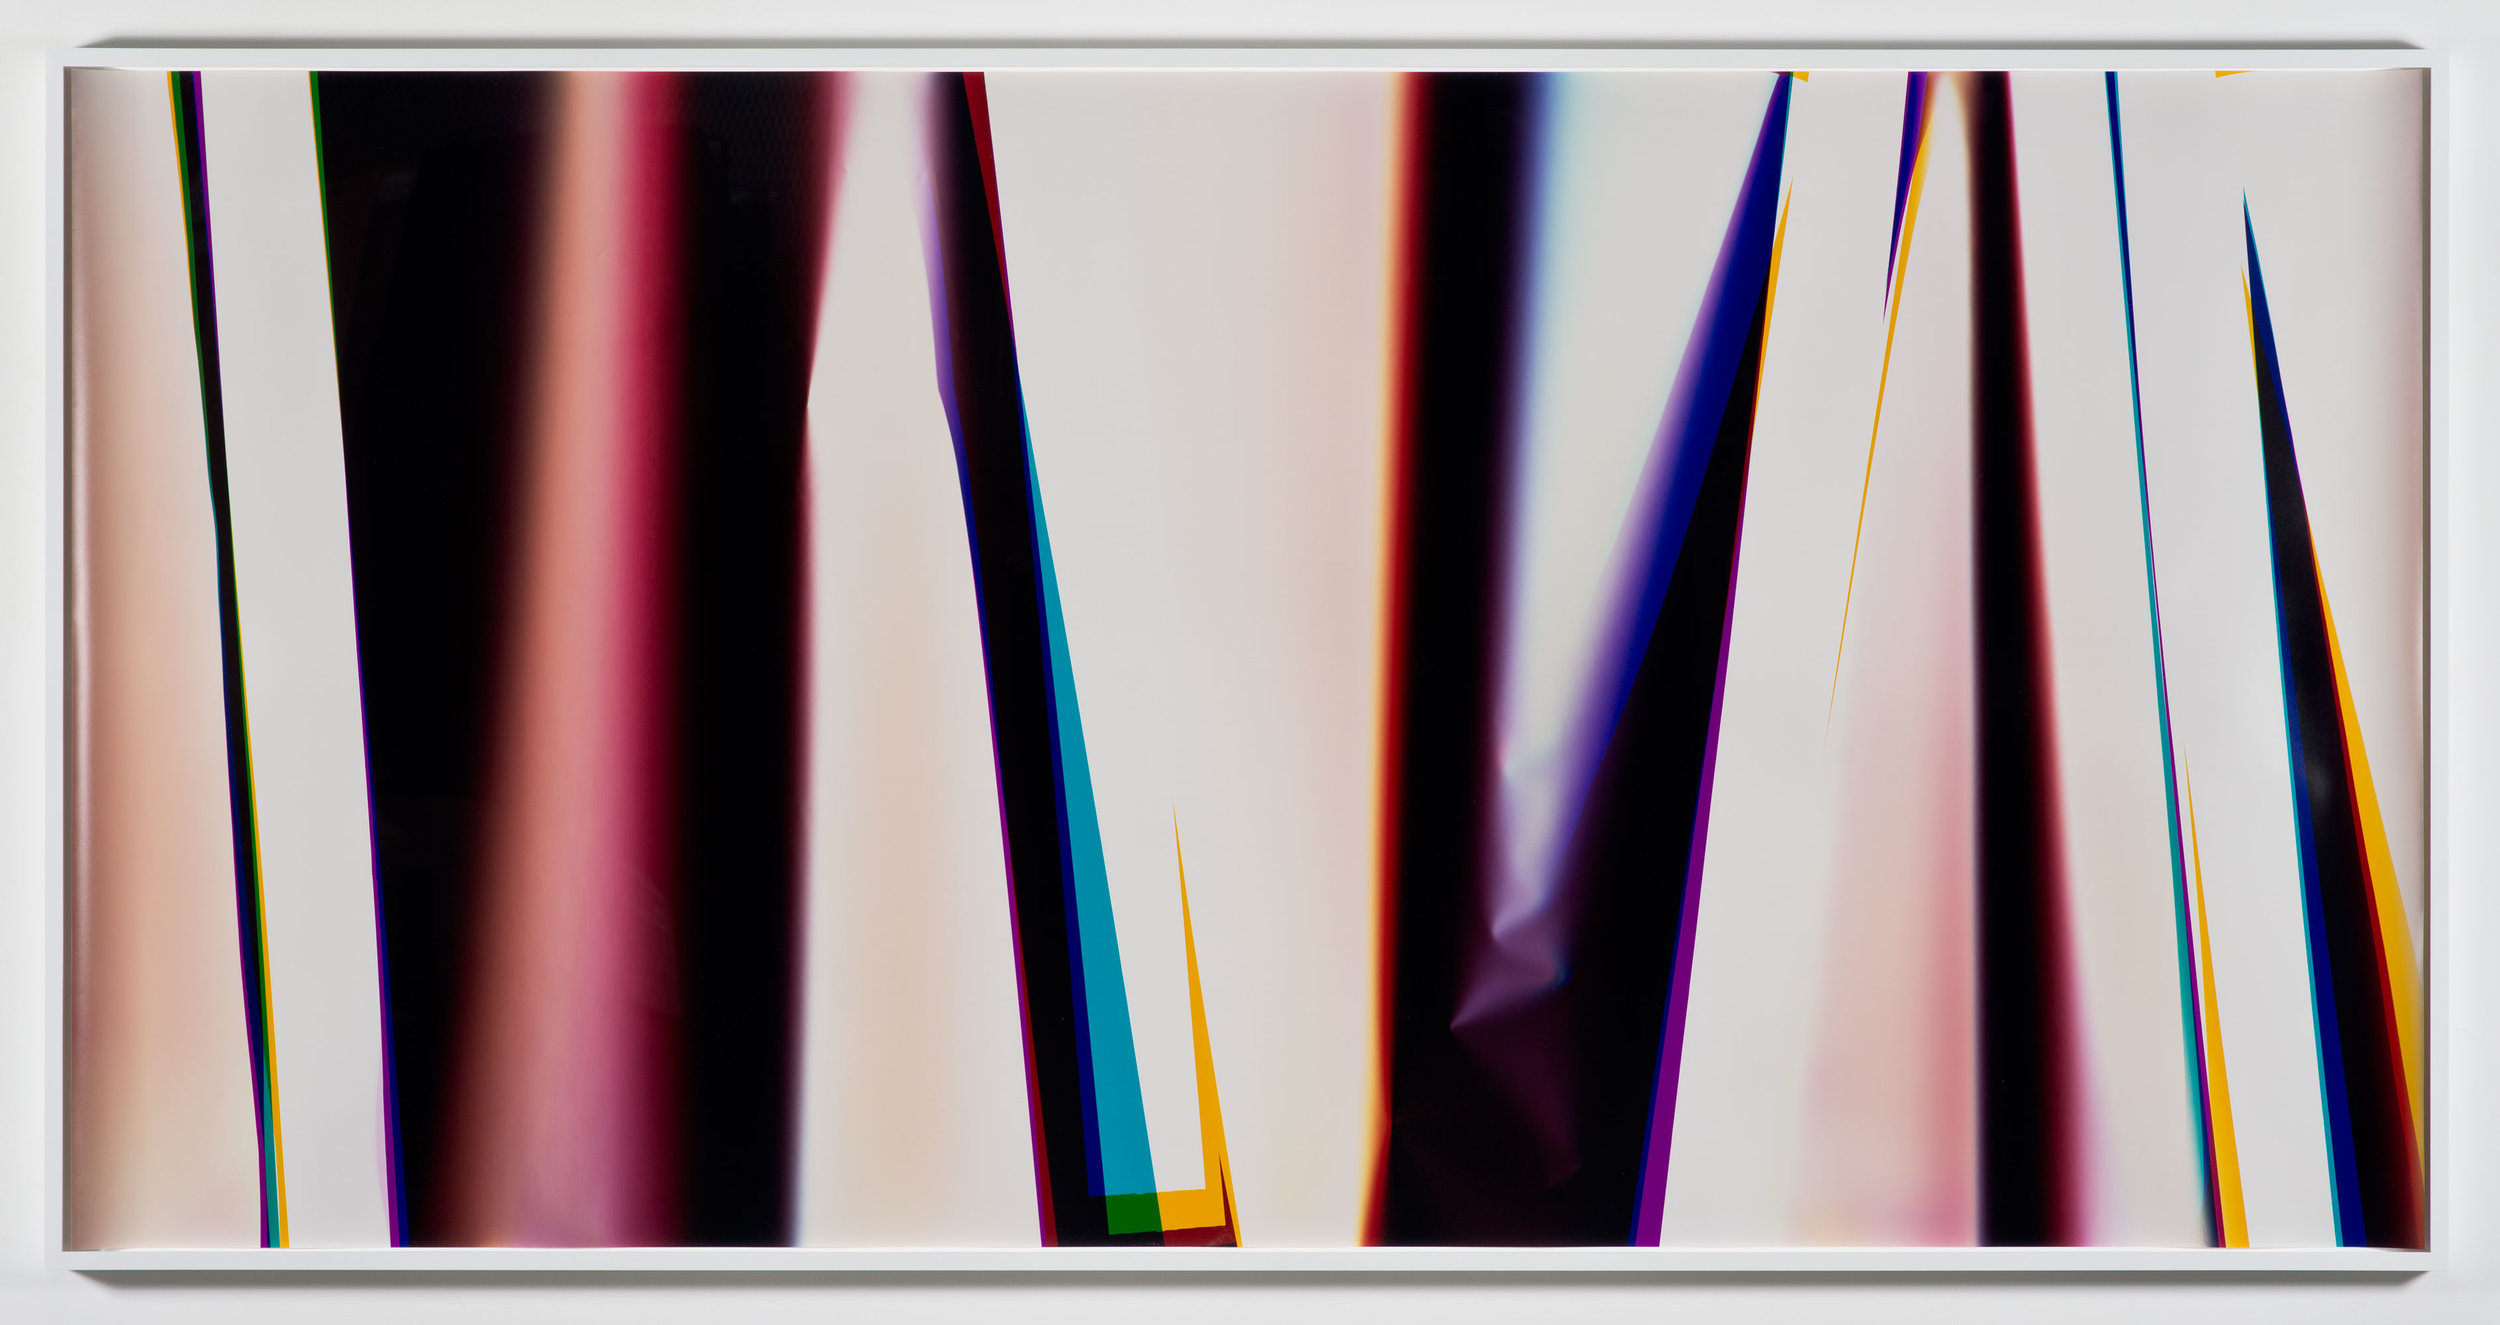 White Curl (YMC/Four Magnet: Los Angeles, California, February 28, 2013, Fuji Color Crystal Archive Super Type C, Em. No. 166-016, 06713)    2013   Color photographic paper  50 x 102 inches